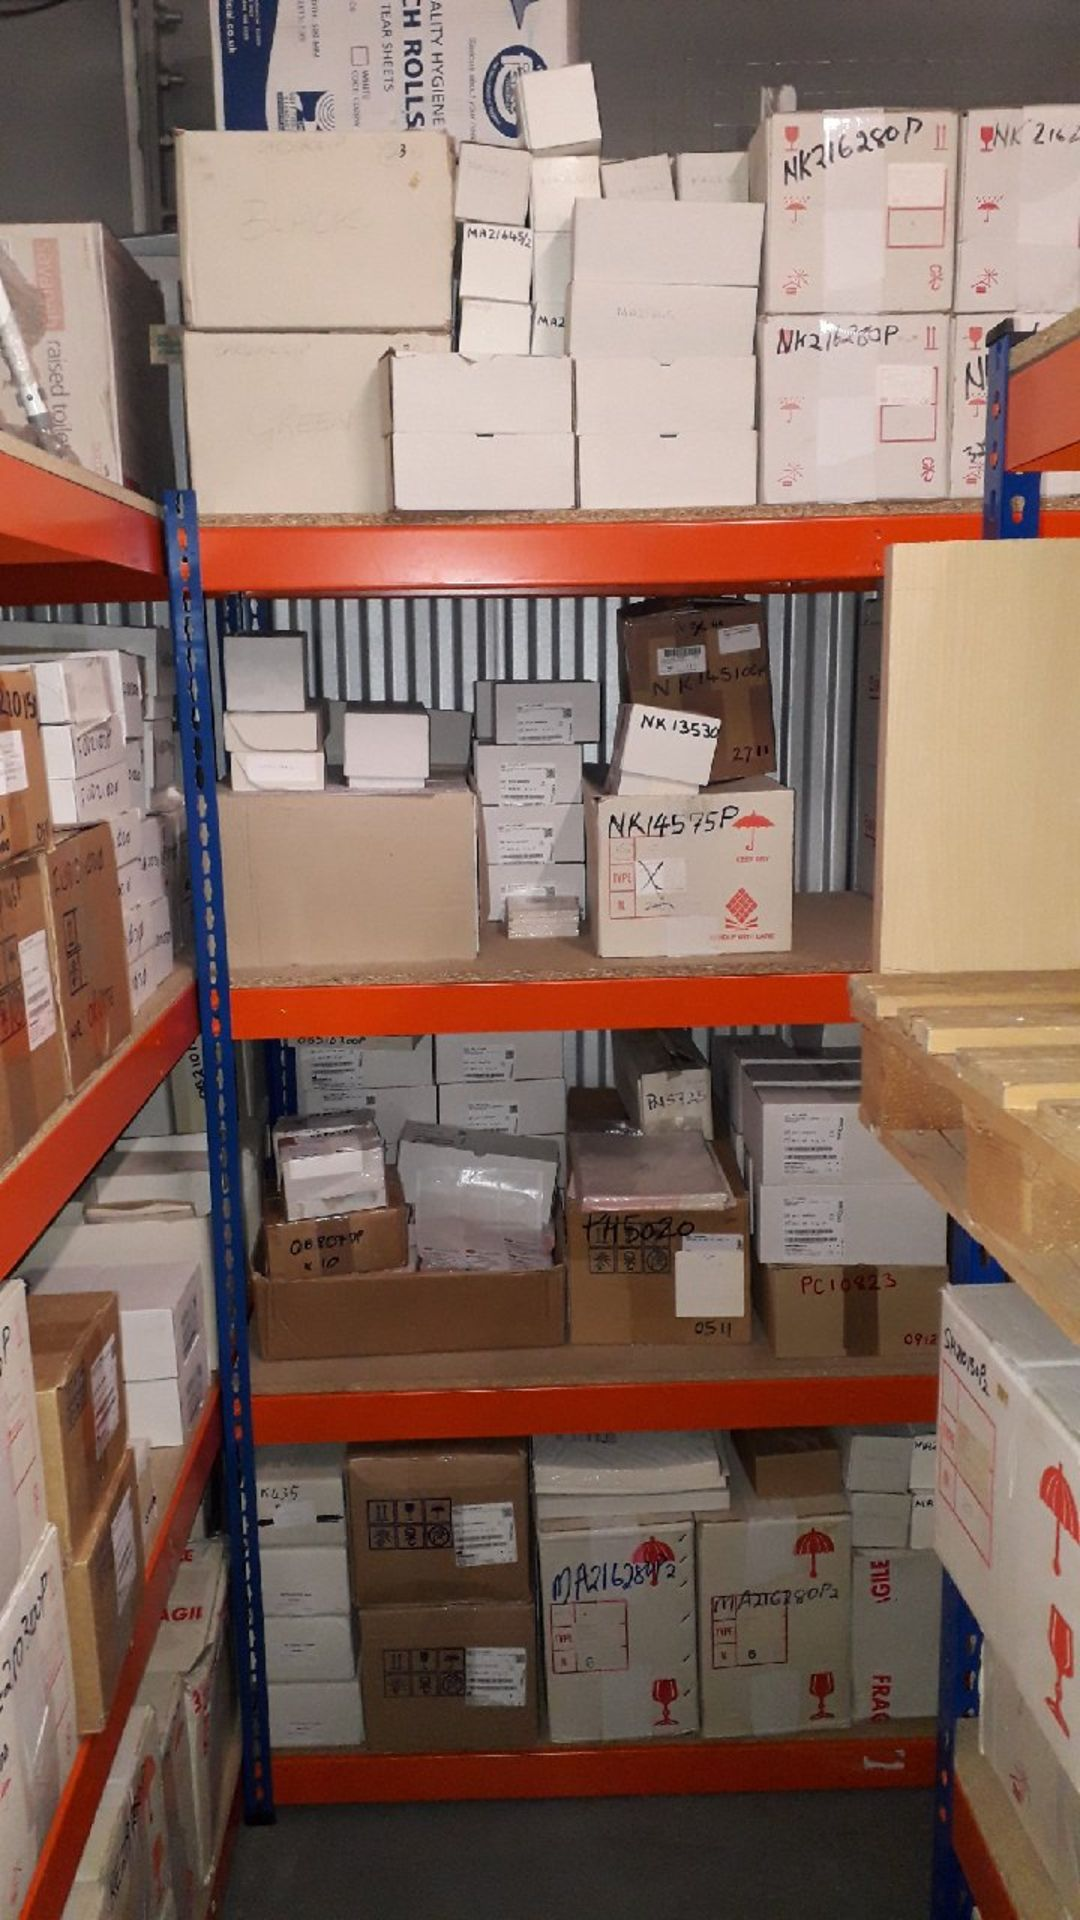 Stock of medical consumables and equipment to incl - Image 15 of 23